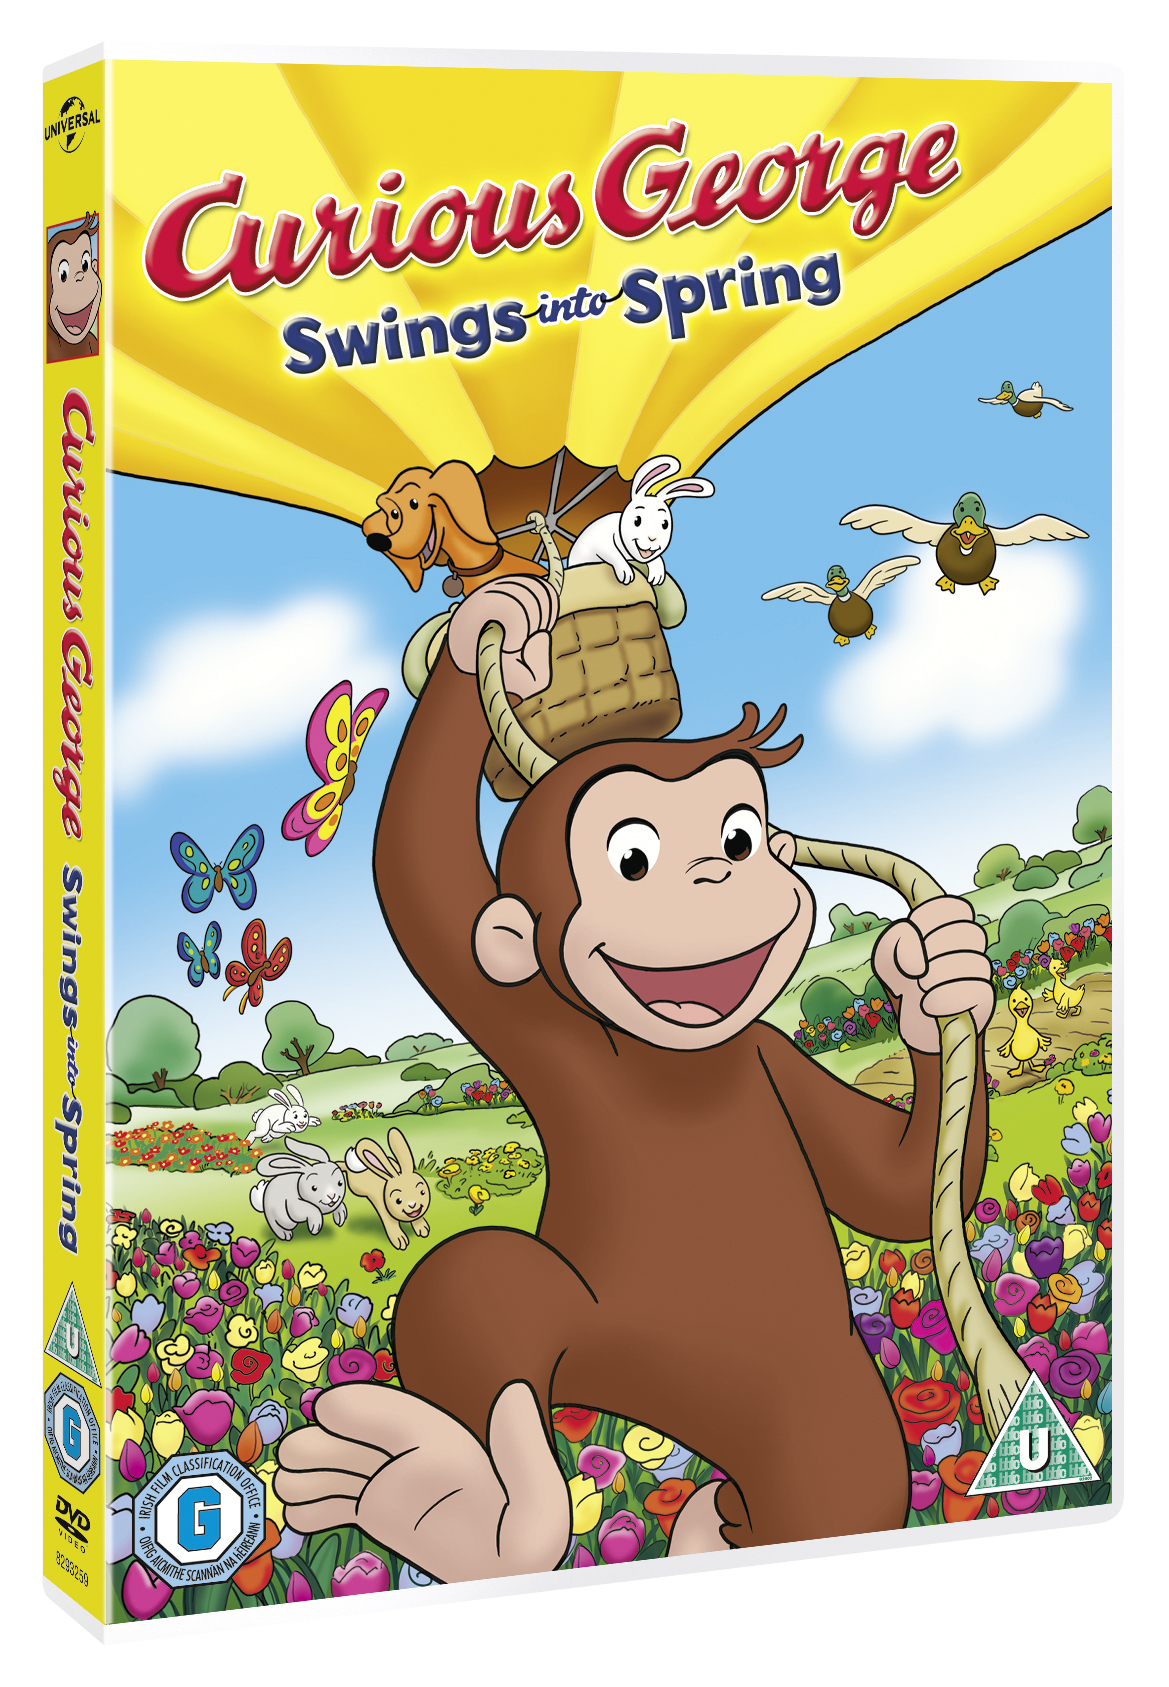 Win 1 of 3 copies of new DVD 'Curious George Swings into Spring'